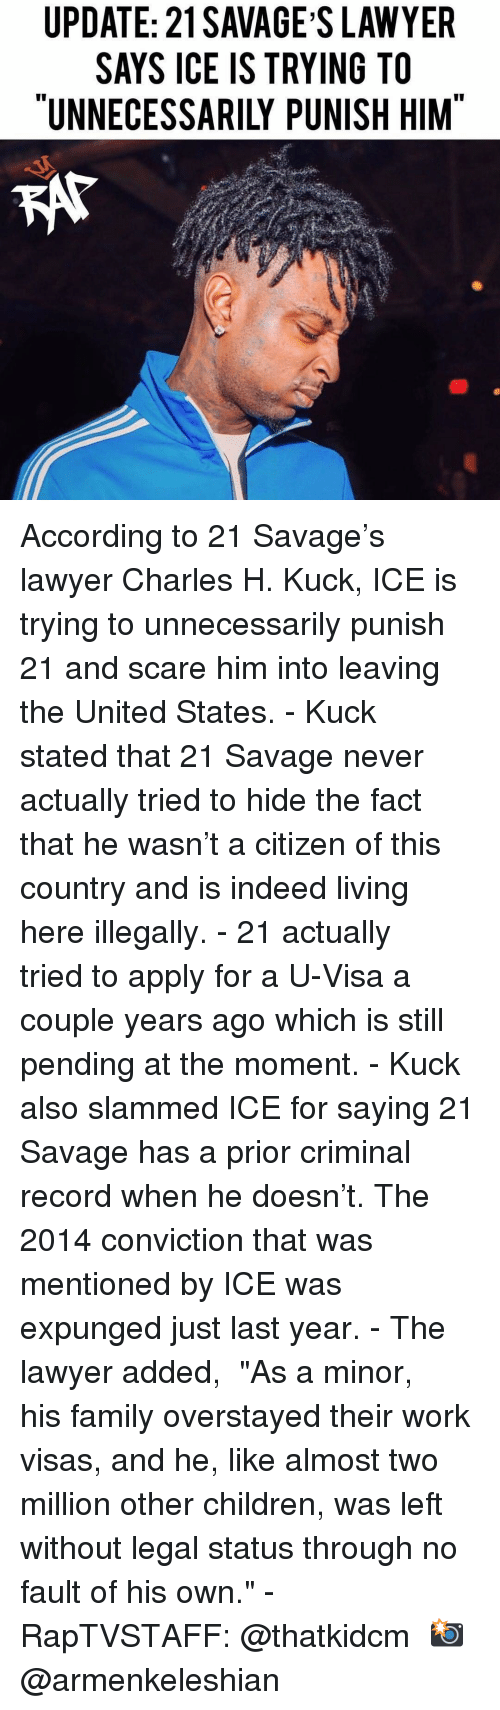 "Children, Family, and Lawyer: UPDATE: 21 SAVAGE S LAWYER  SAYS ICE IS TRYING TO  ""UNNECESSARILY PUNISH HIM According to 21 Savage's lawyer Charles H. Kuck, ICE is trying to unnecessarily punish 21 and scare him into leaving the United States.⁣ -⁣ Kuck stated that 21 Savage never actually tried to hide the fact that he wasn't a citizen of this country and is indeed living here illegally.⁣ -⁣ 21 actually tried to apply for a U-Visa a couple years ago which is still pending at the moment.⁣ -⁣ Kuck also slammed ICE for saying 21 Savage has a prior criminal record when he doesn't. The 2014 conviction that was mentioned by ICE was expunged just last year.⁣ -⁣ The lawyer added,⁣ ⁣ ""As a minor, his family overstayed their work visas, and he, like almost two million other children, was left without legal status through no fault of his own.""⁣ -⁣ RapTVSTAFF: @thatkidcm⁣ 📸 @armenkeleshian⁣"